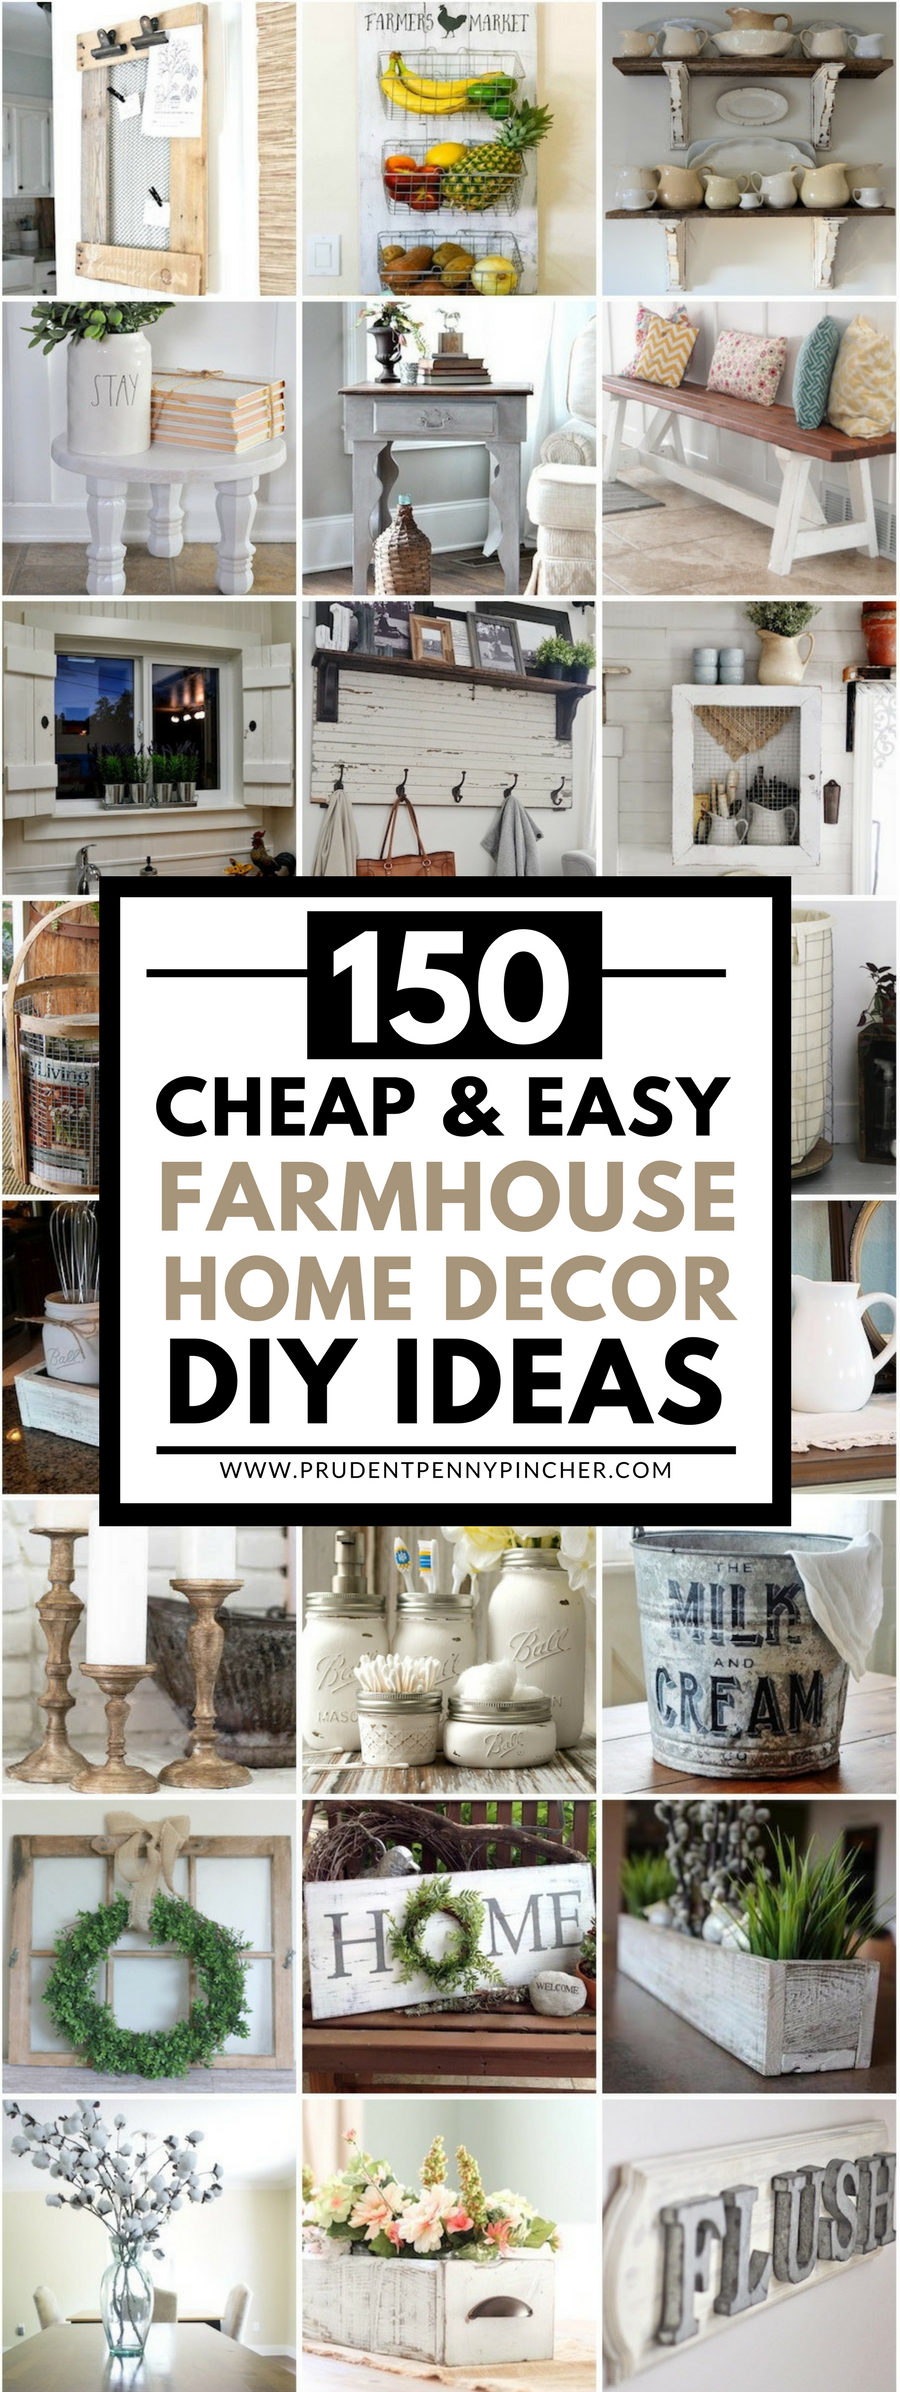 150 cheap and easy diy farmhouse style home decor ideas prudent penny pincher - Easy home design tips ...